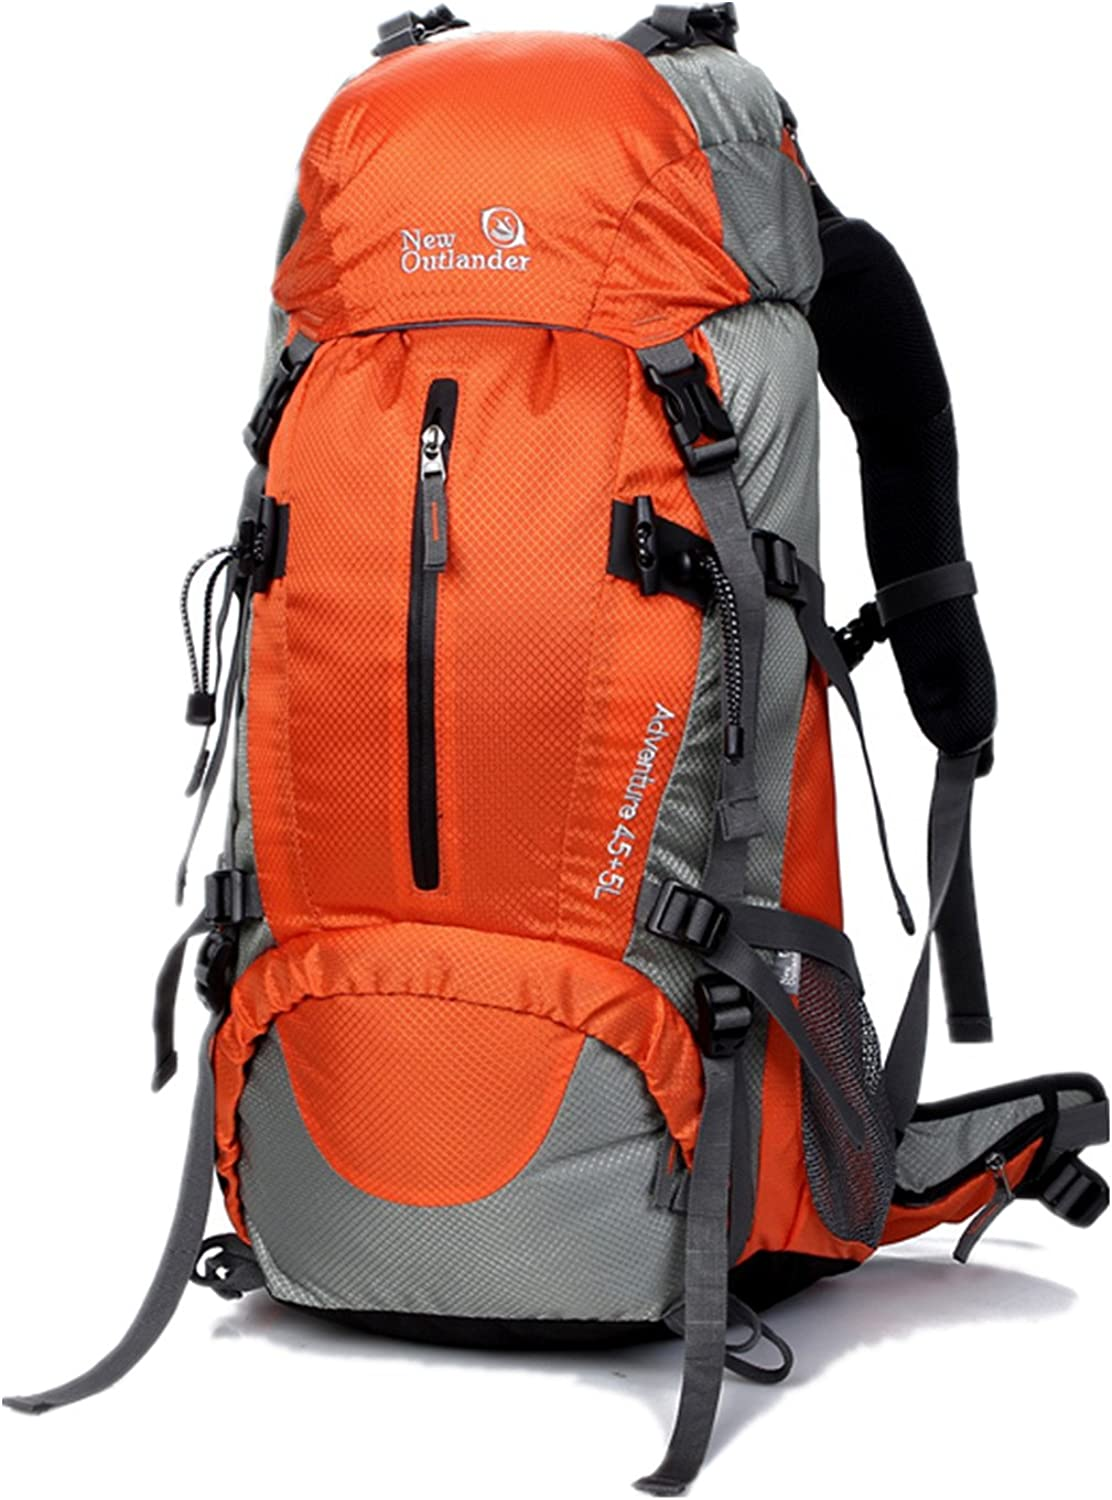 UNISTRENGH 50L(45+5) Hiking Backpack Waterproof Internal Frame Backpacking Bag Outdoor Sport Daypack with Rain Cover for Climbing Mountaineering Camping Fishing